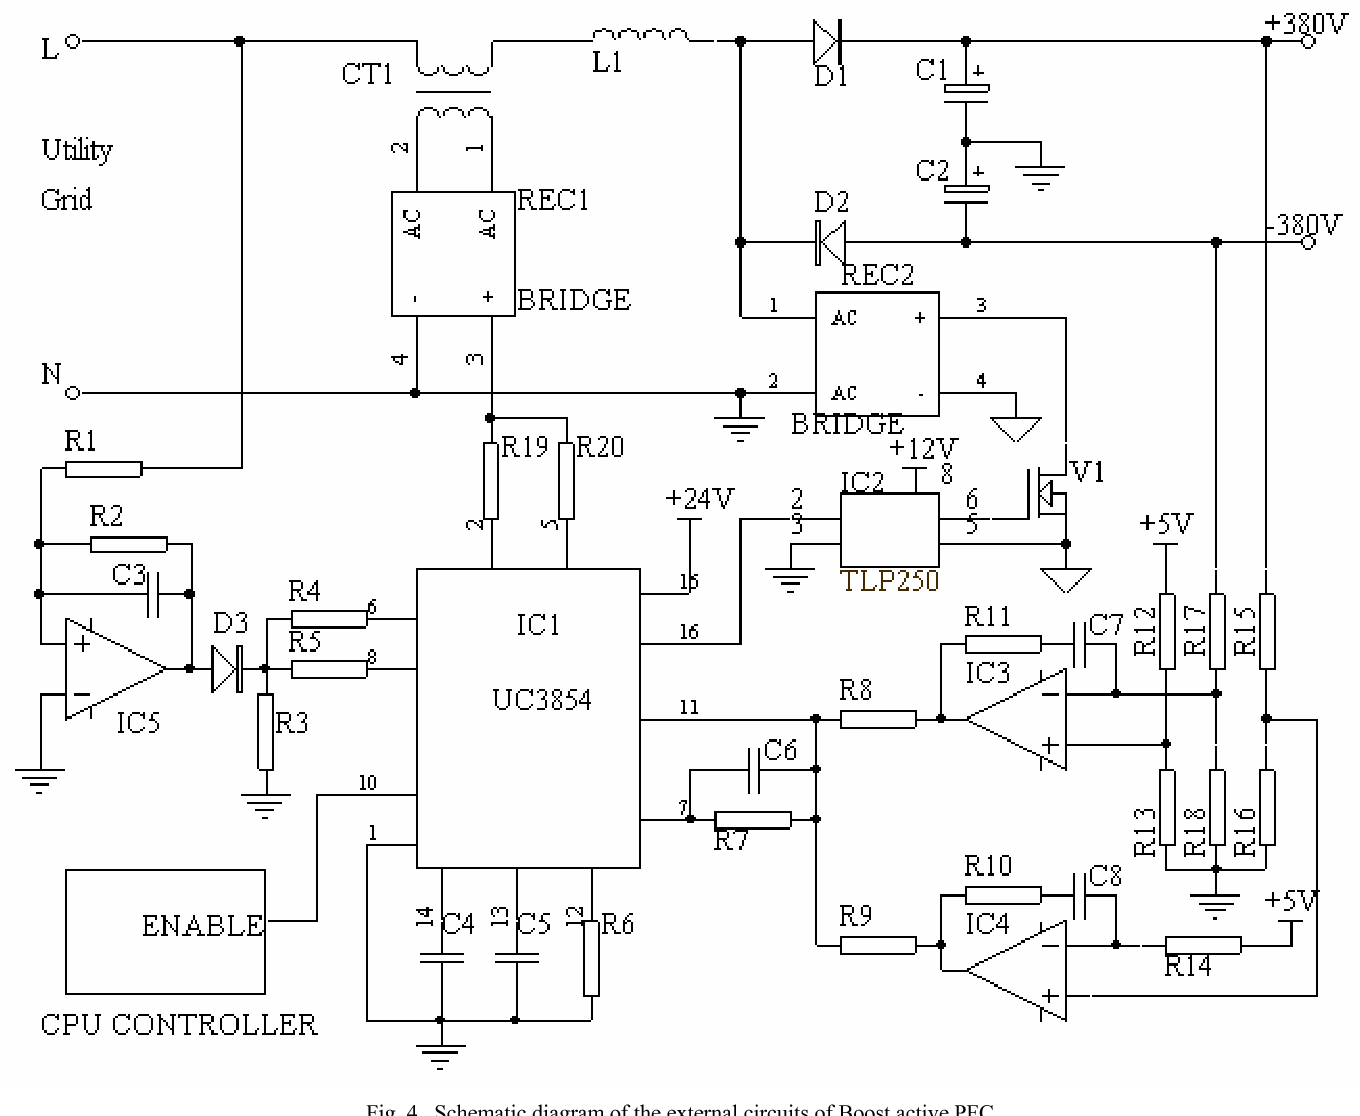 Schematic Diagram Ups Ica Experience Of Wiring H Bridge Circuit Design An Active Power Factor Converter For With Backup Rh Semanticscholar Org